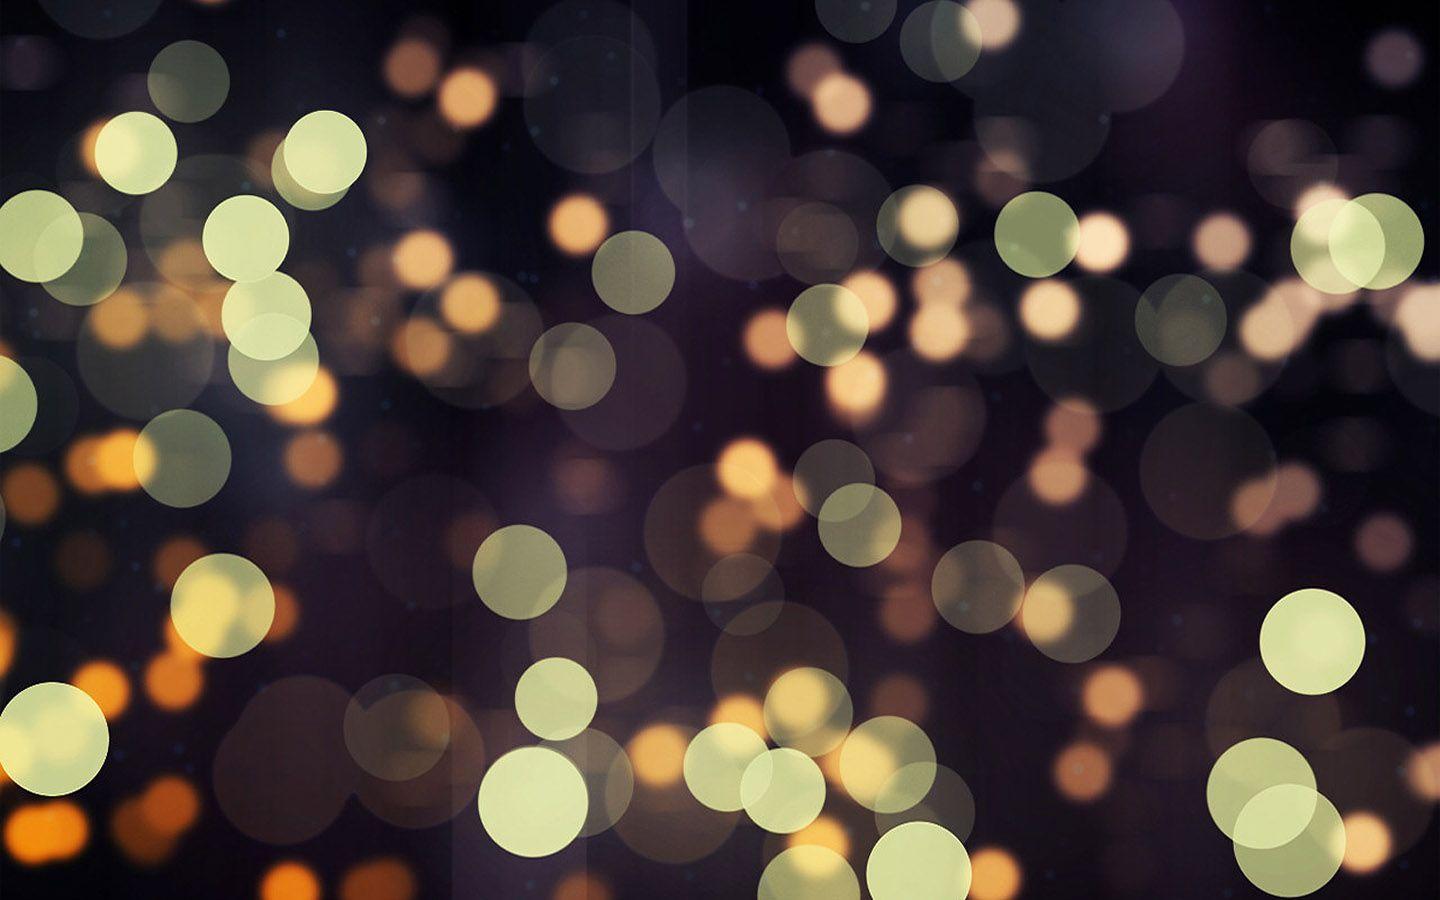 Rain Bokeh HD desktop wallpaper High Definition Fullscreen